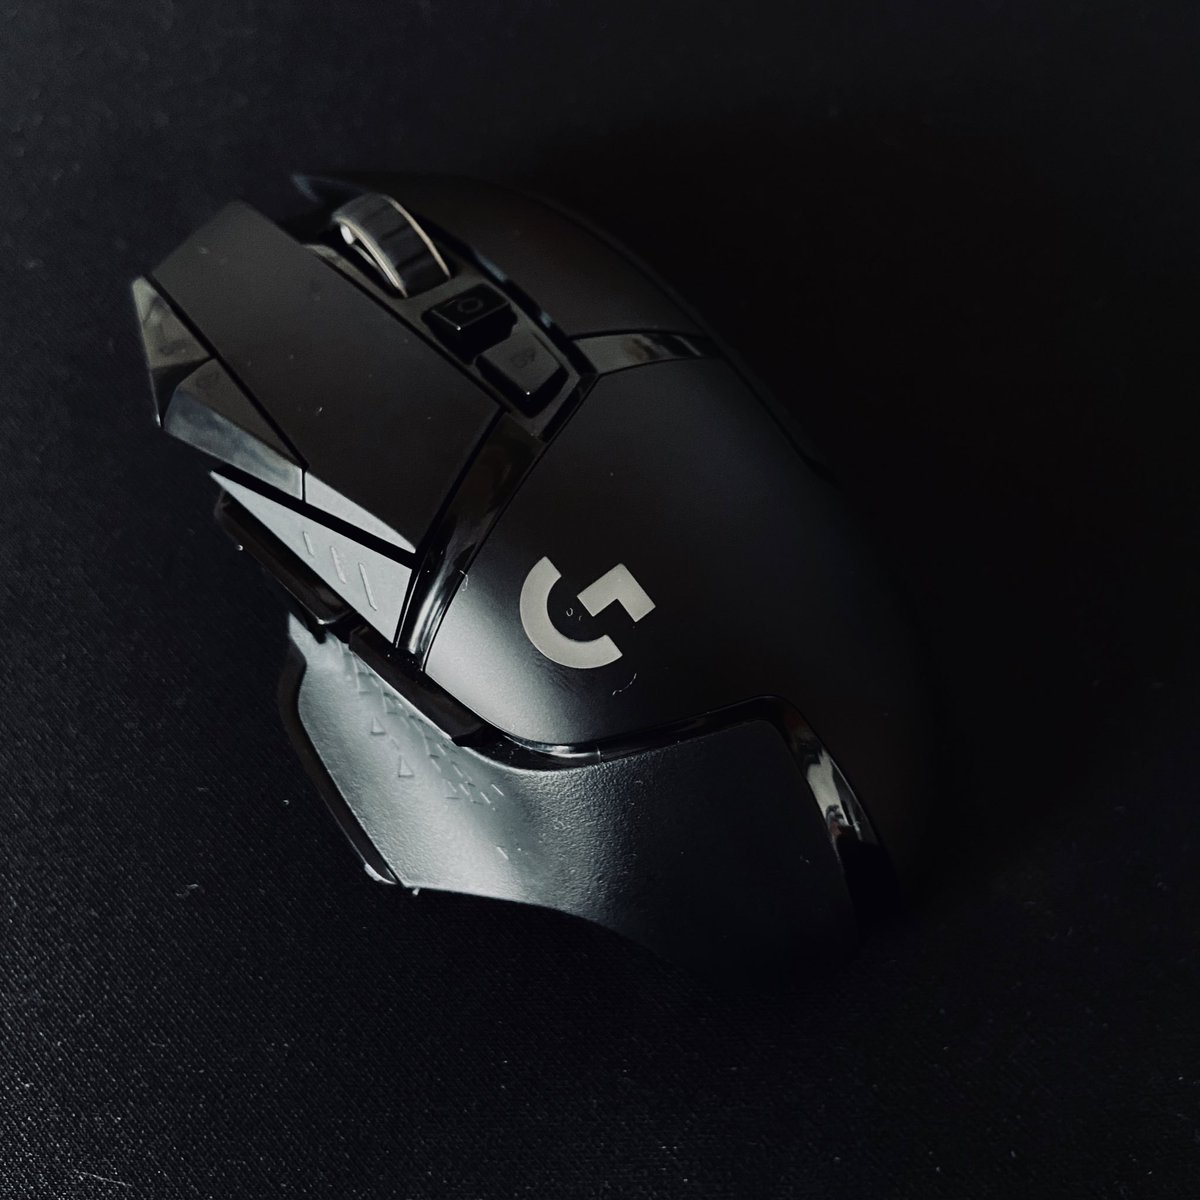 The Logitech G502 Lightspeed is wireless, fast, has adjustable weights and much more. I've never been this excited to review a gaming mouse. @LogitechG @India_Logitech https://t.co/OnzCJtwzvn